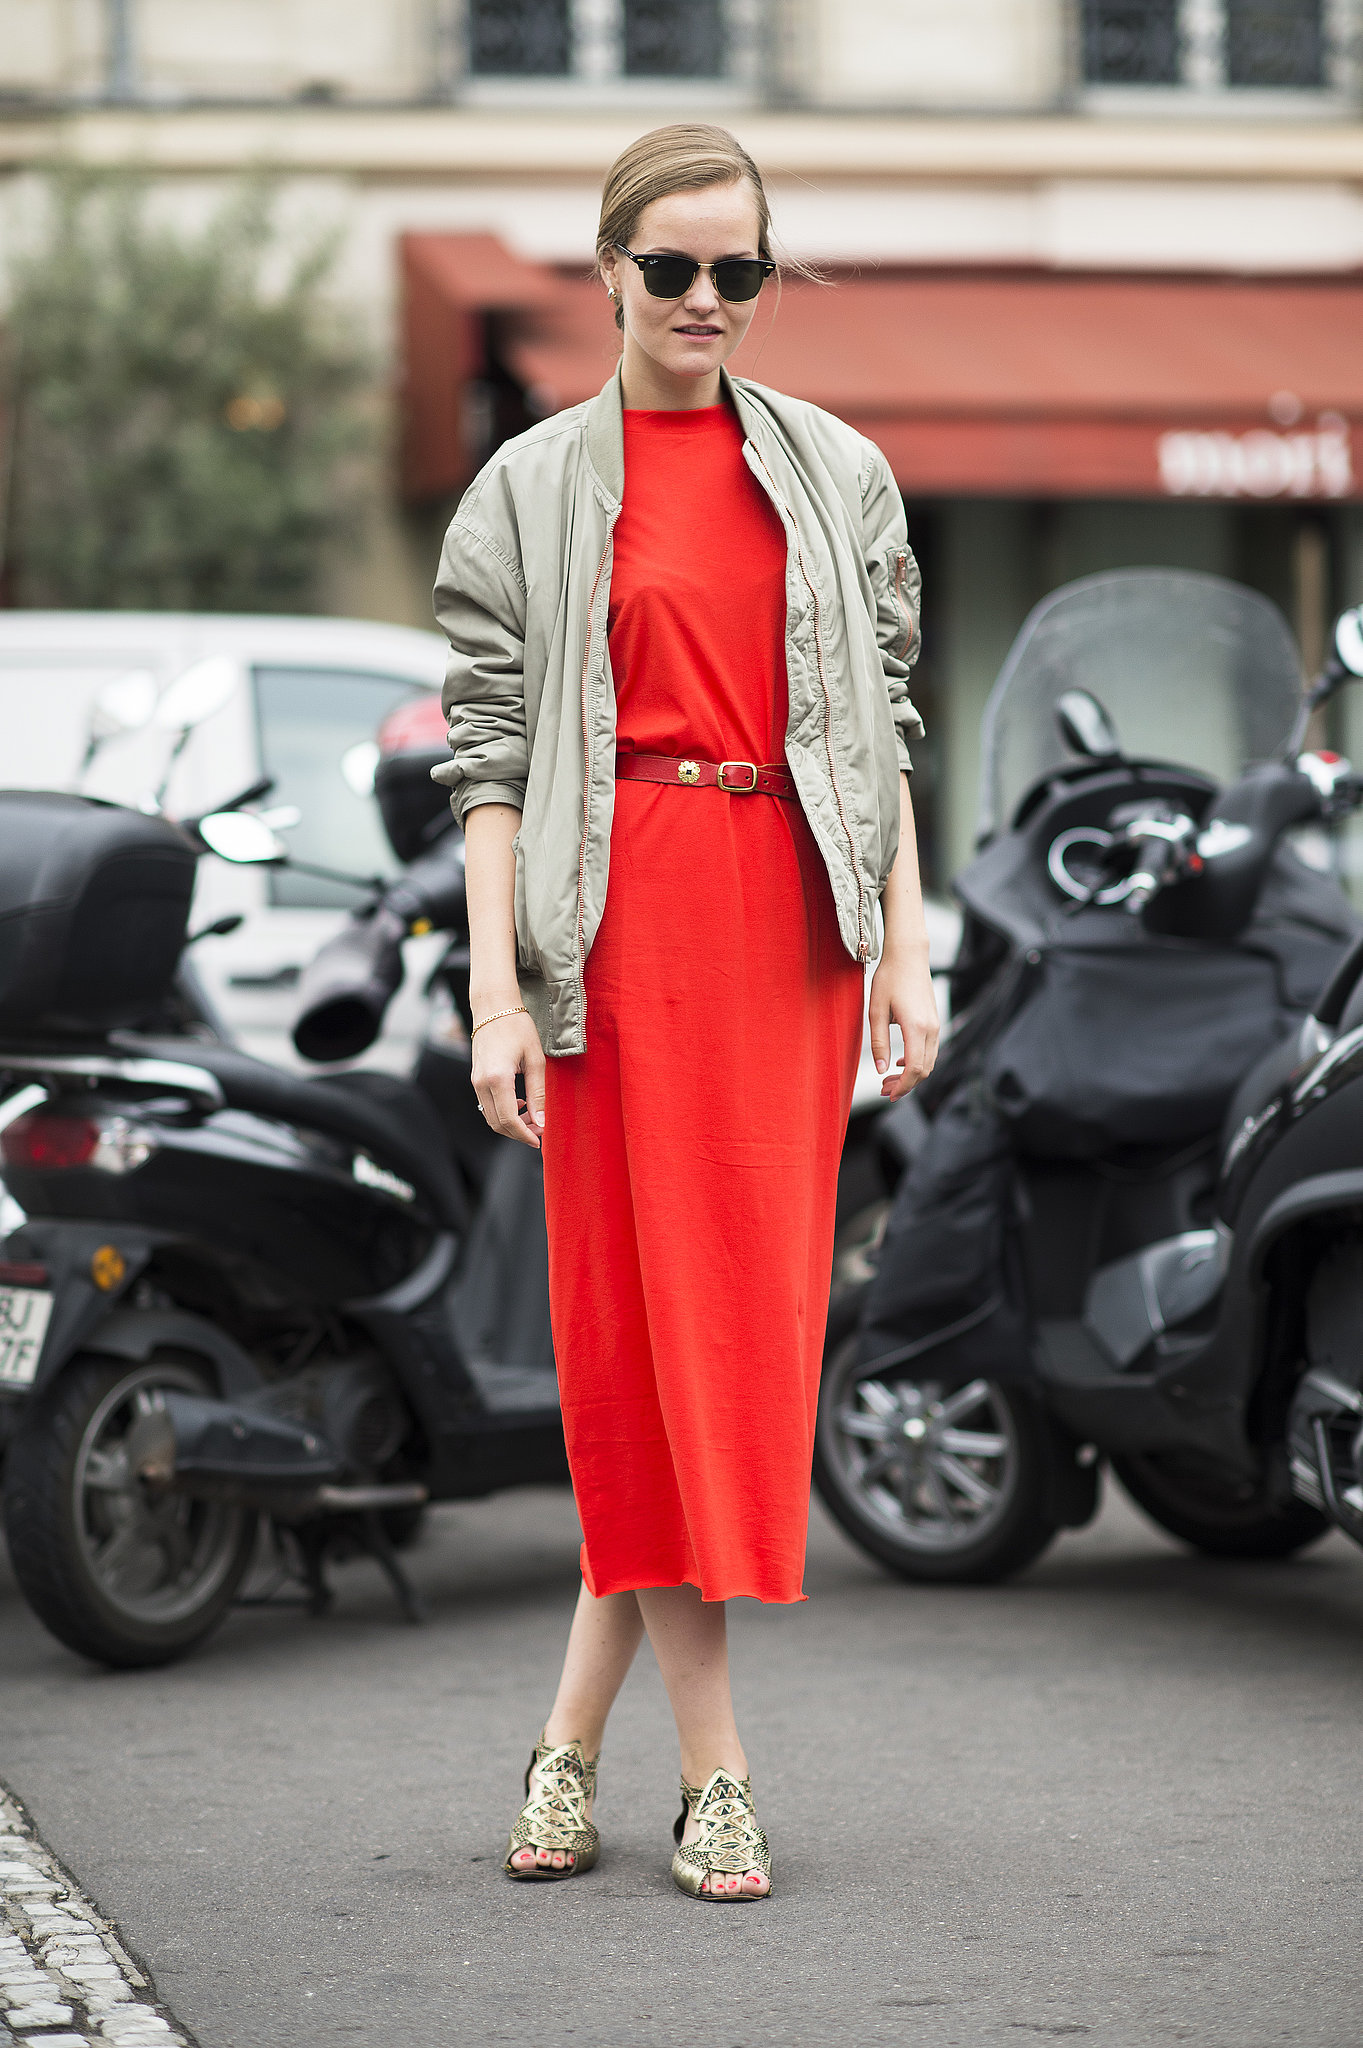 Make sure bold red really stands out by pairing it with soft neutrals, like this red dress accented with beige.